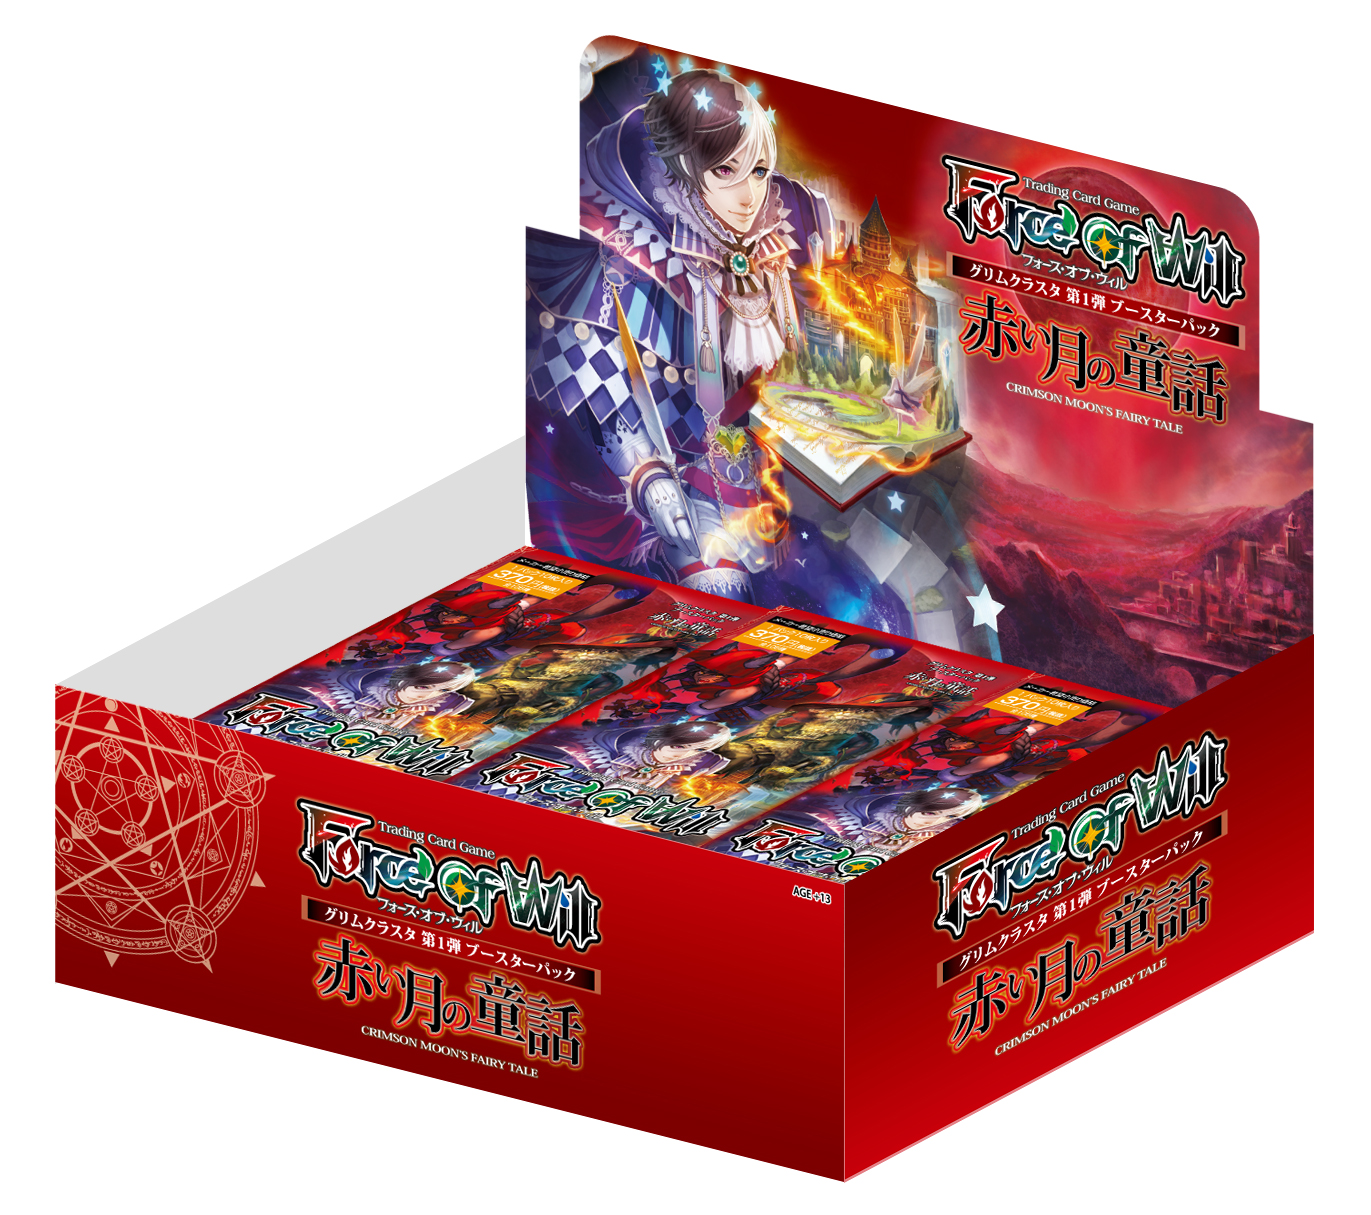 Crimson Moon's Fairy Tale Booster Box